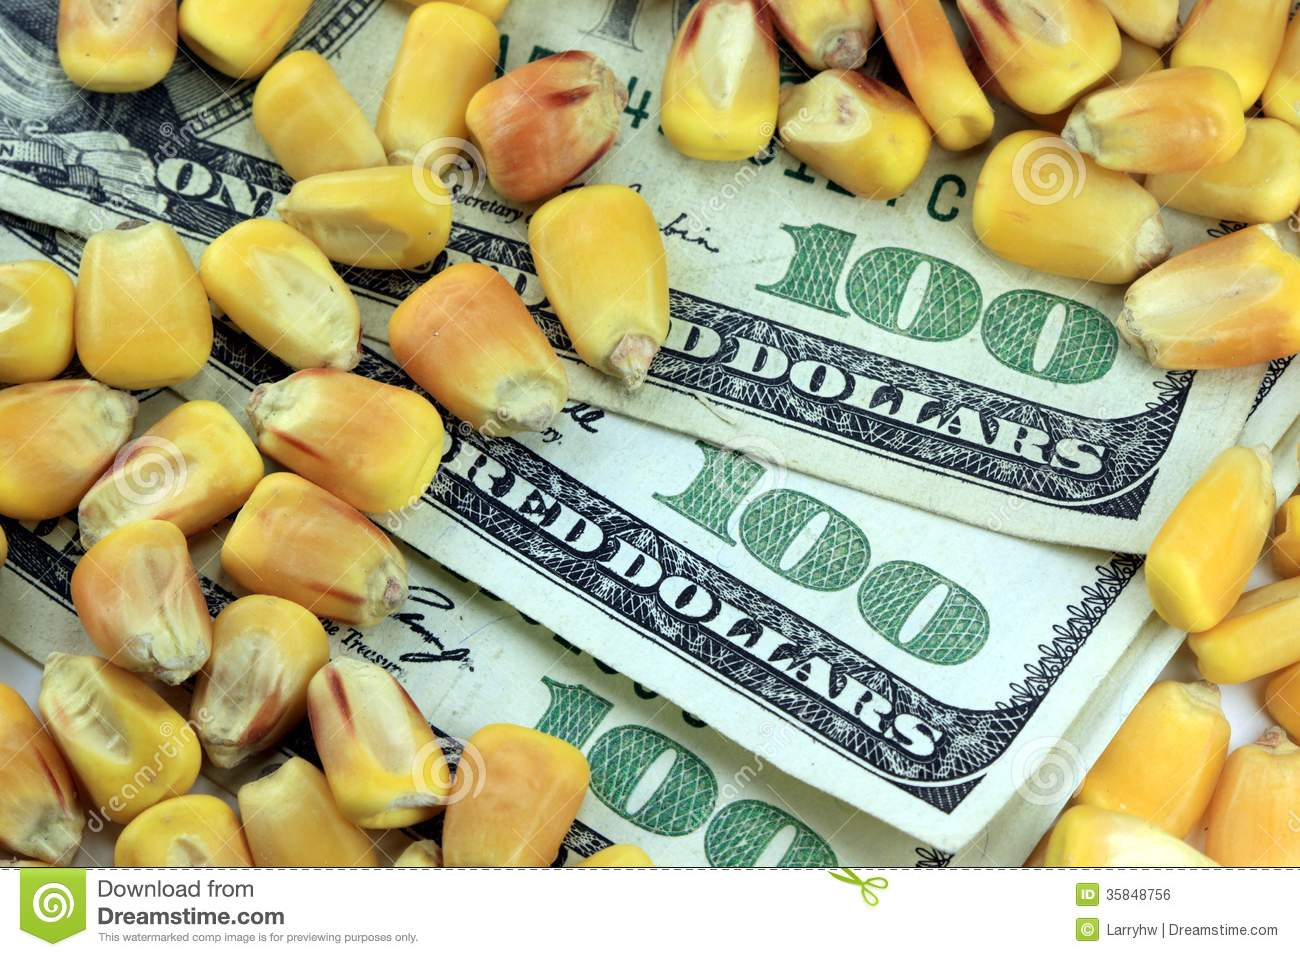 Commodity Prices / Quotes & Commodity Charts - Free